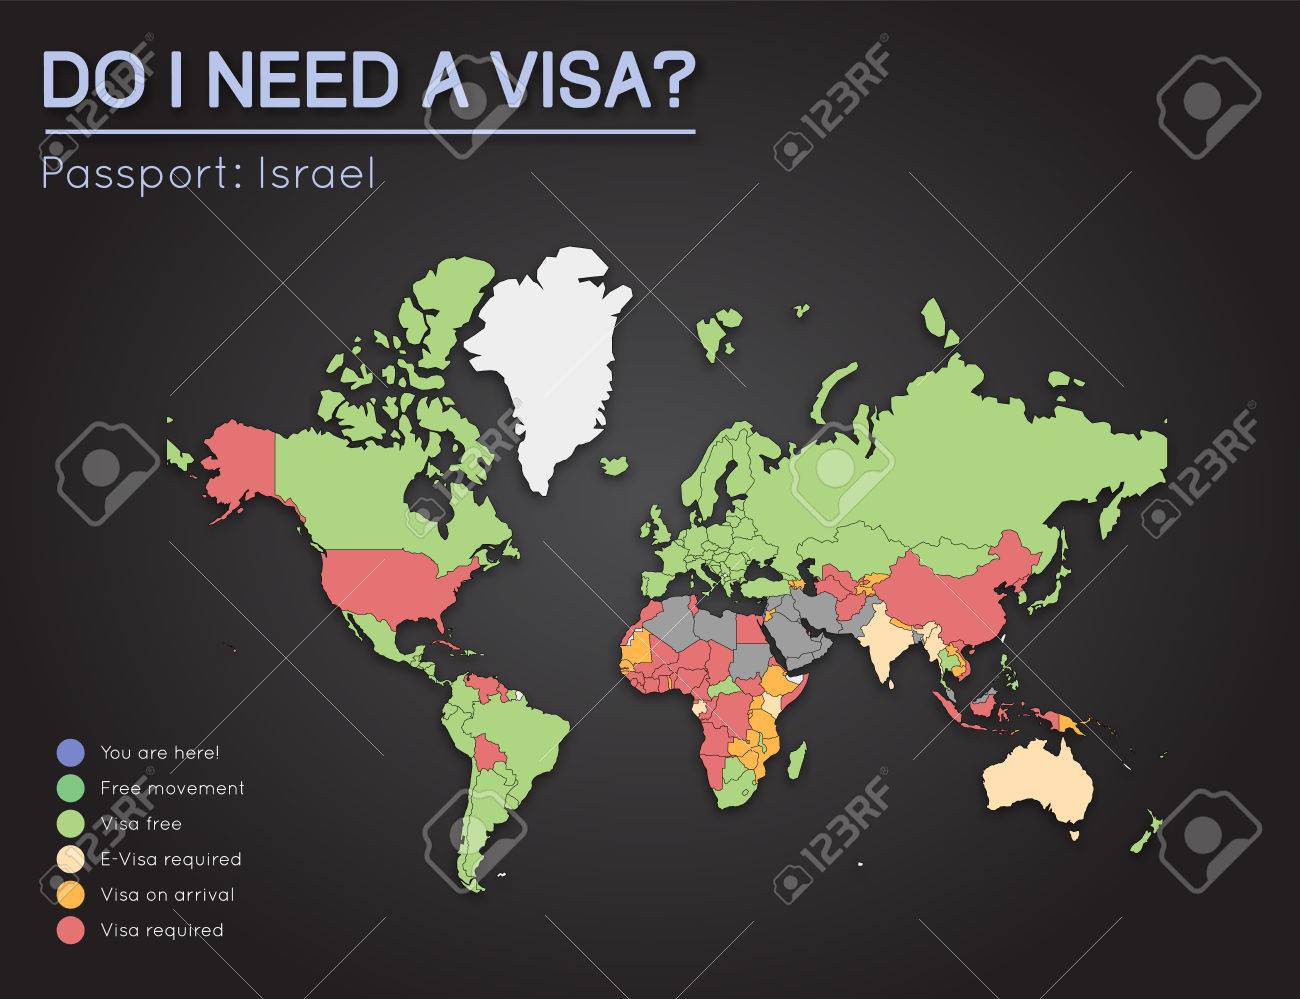 visa free countries for israeli passport holders